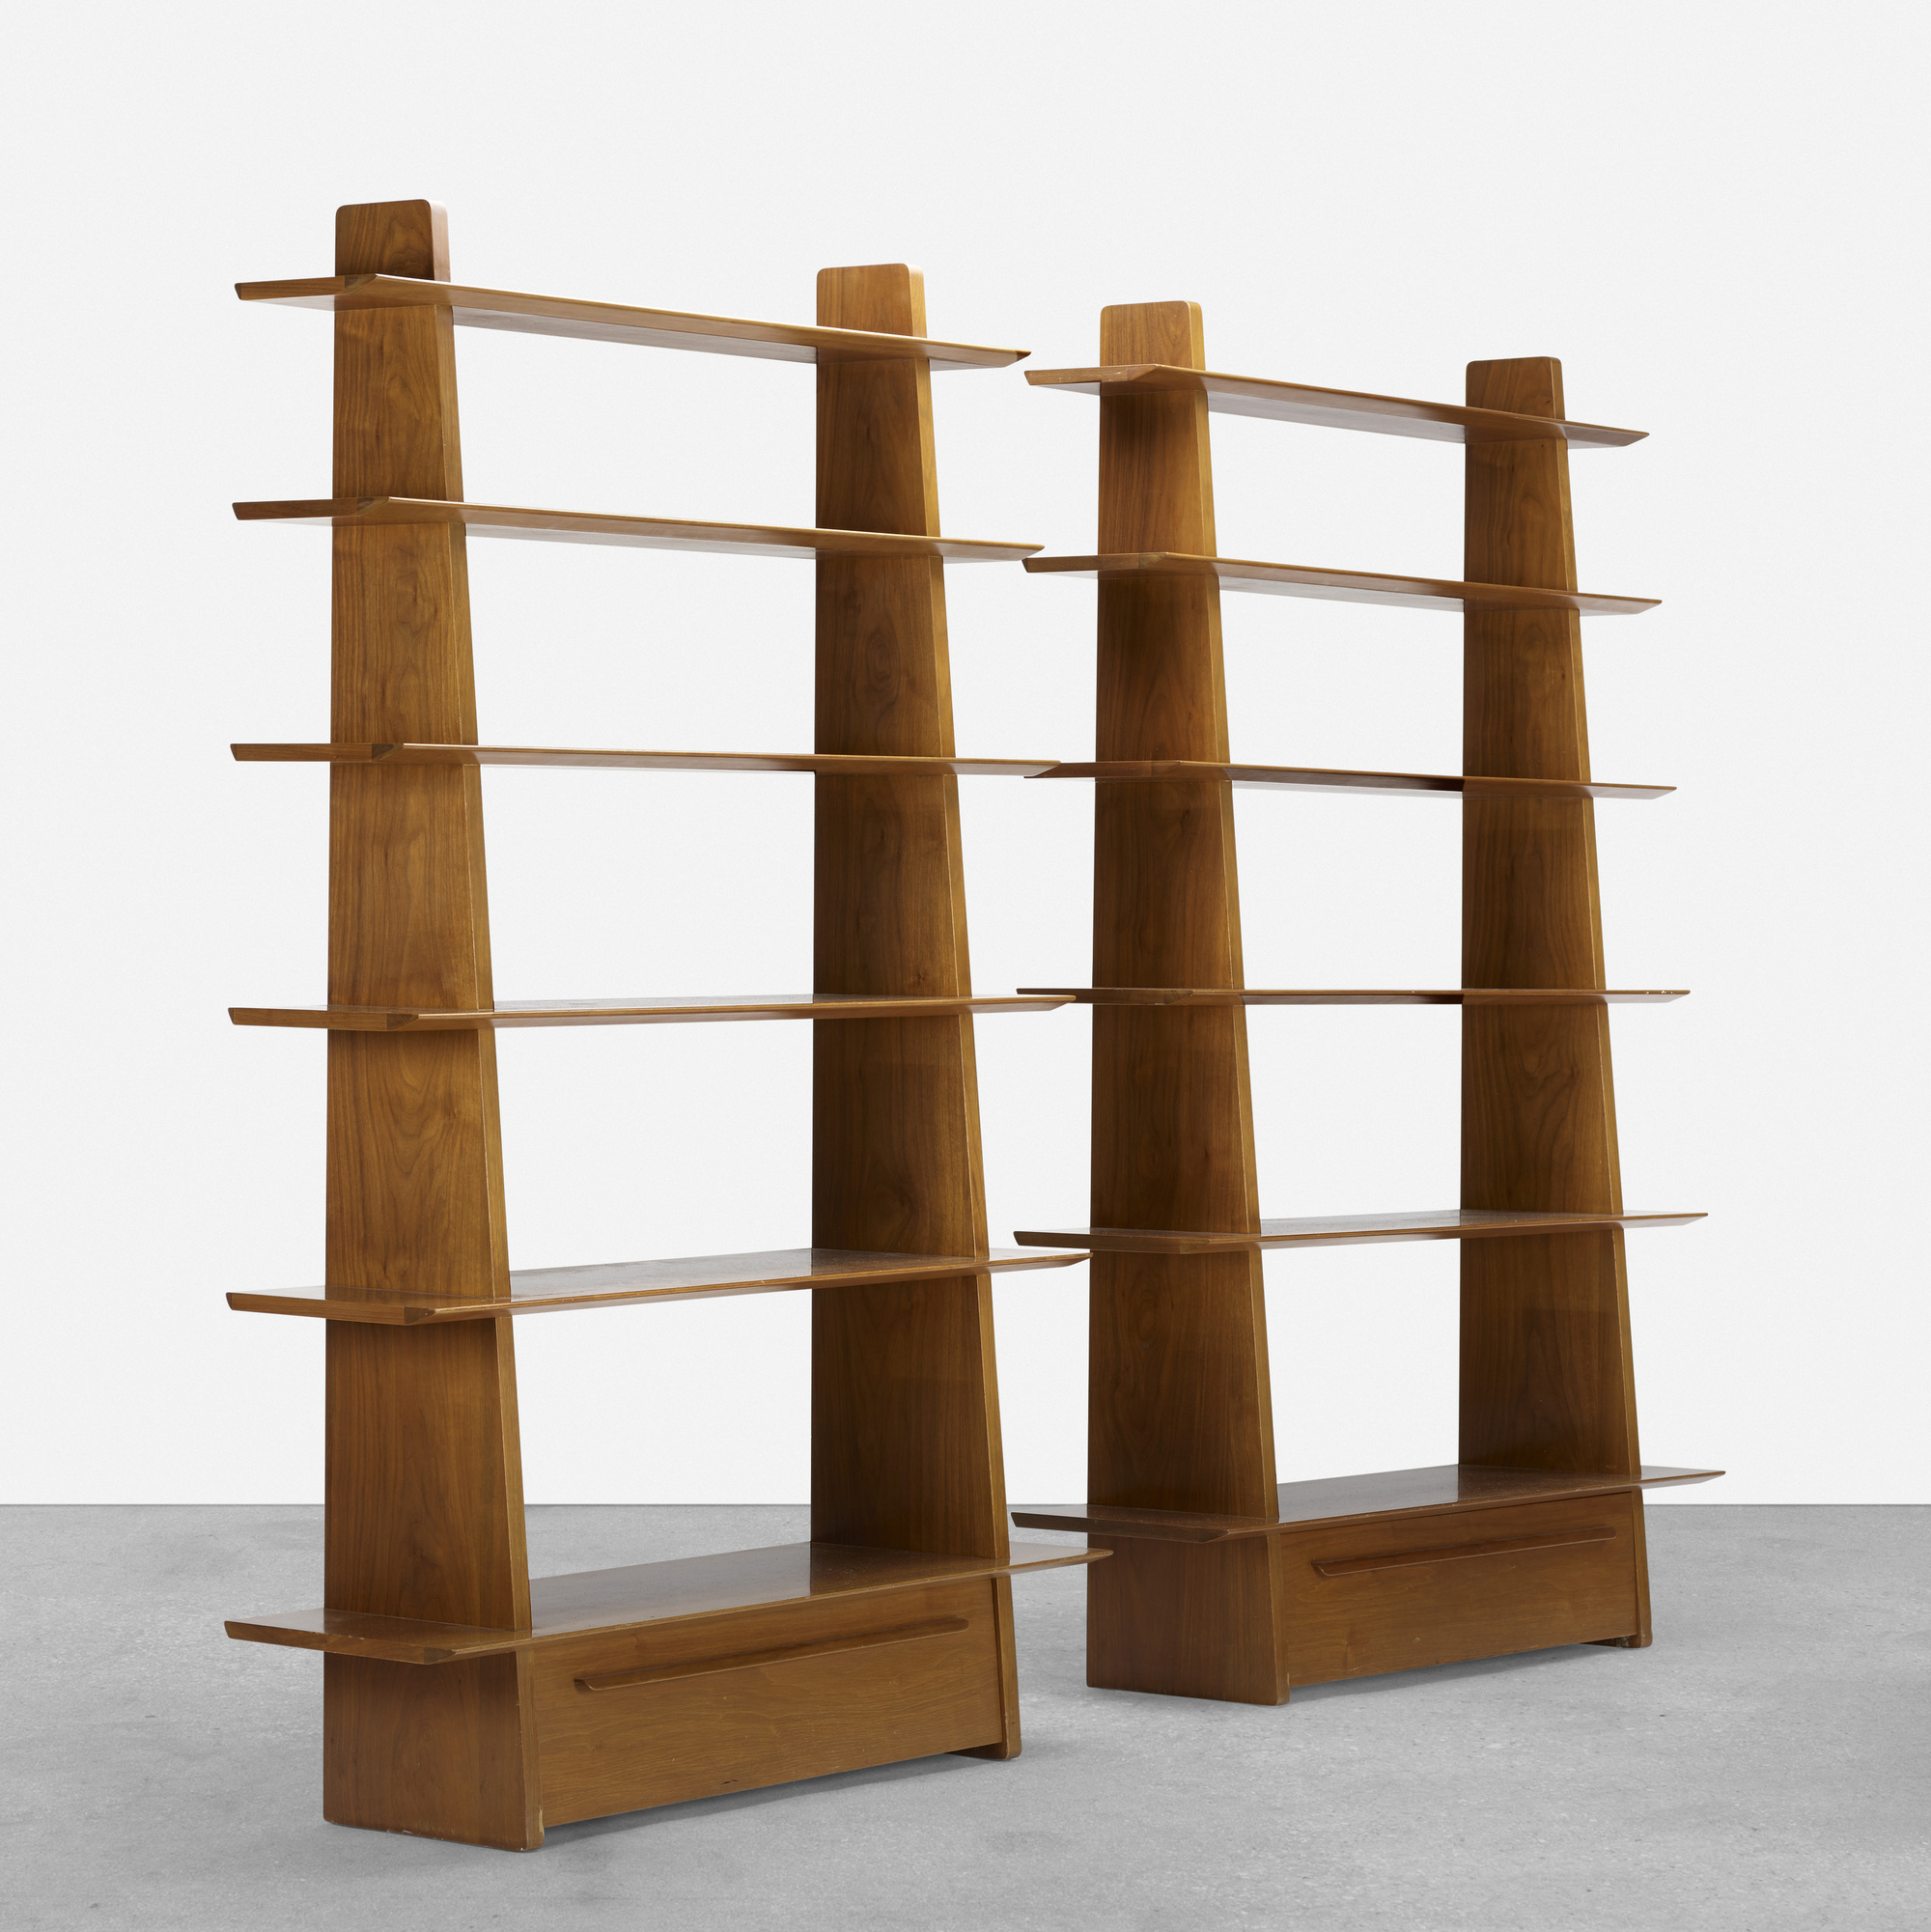 359: Edward Wormley / bookcases model 5264, pair (1 of 3)